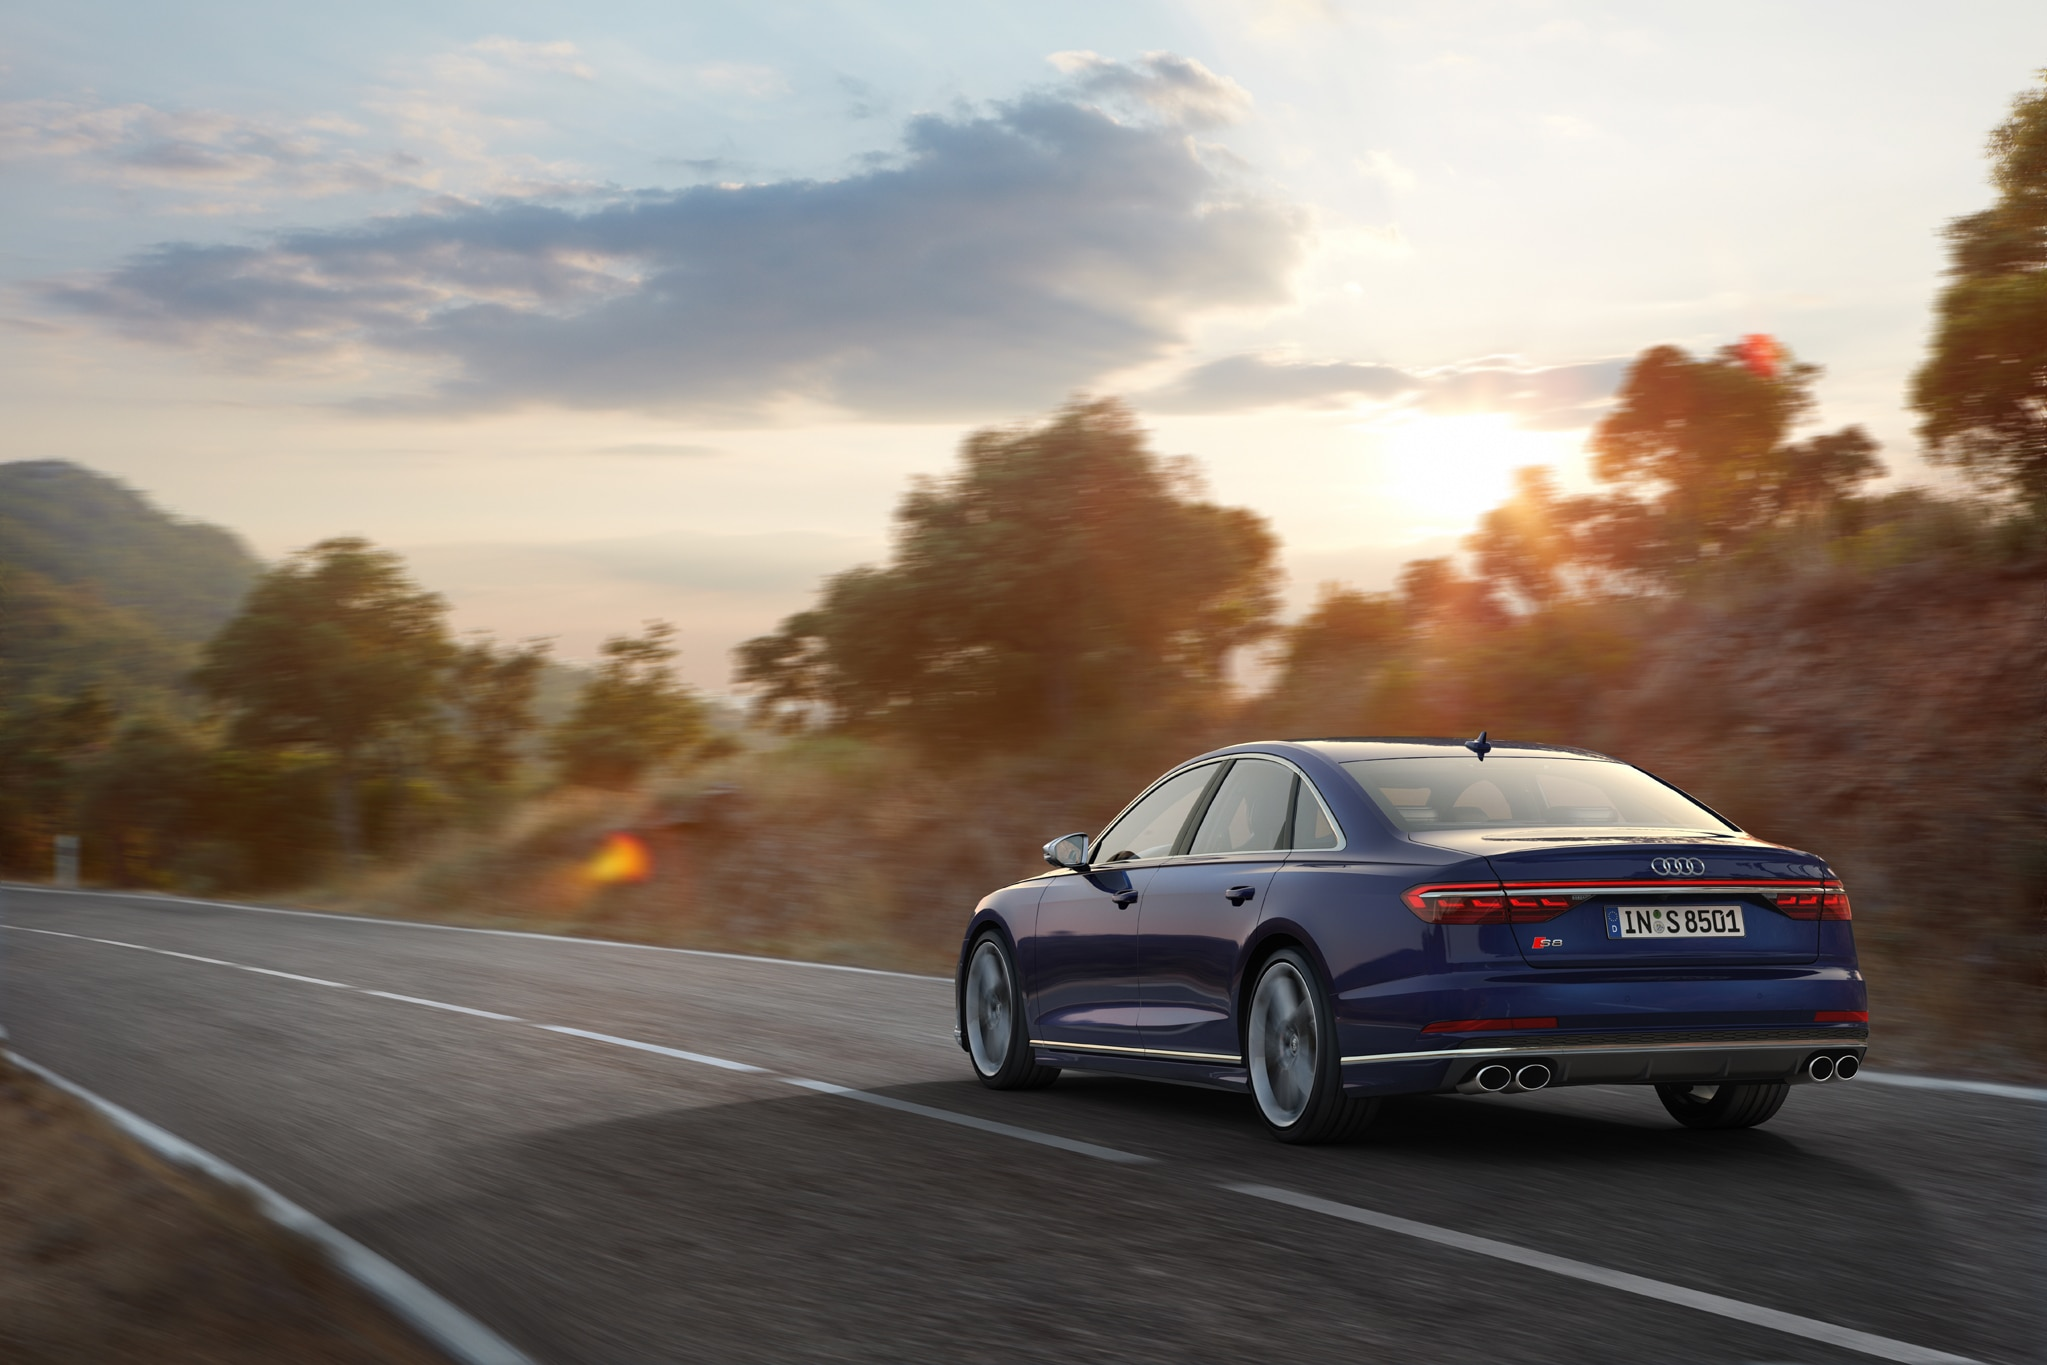 The 2020 Audi S8 Packs 563 HP and Bristles with Tech